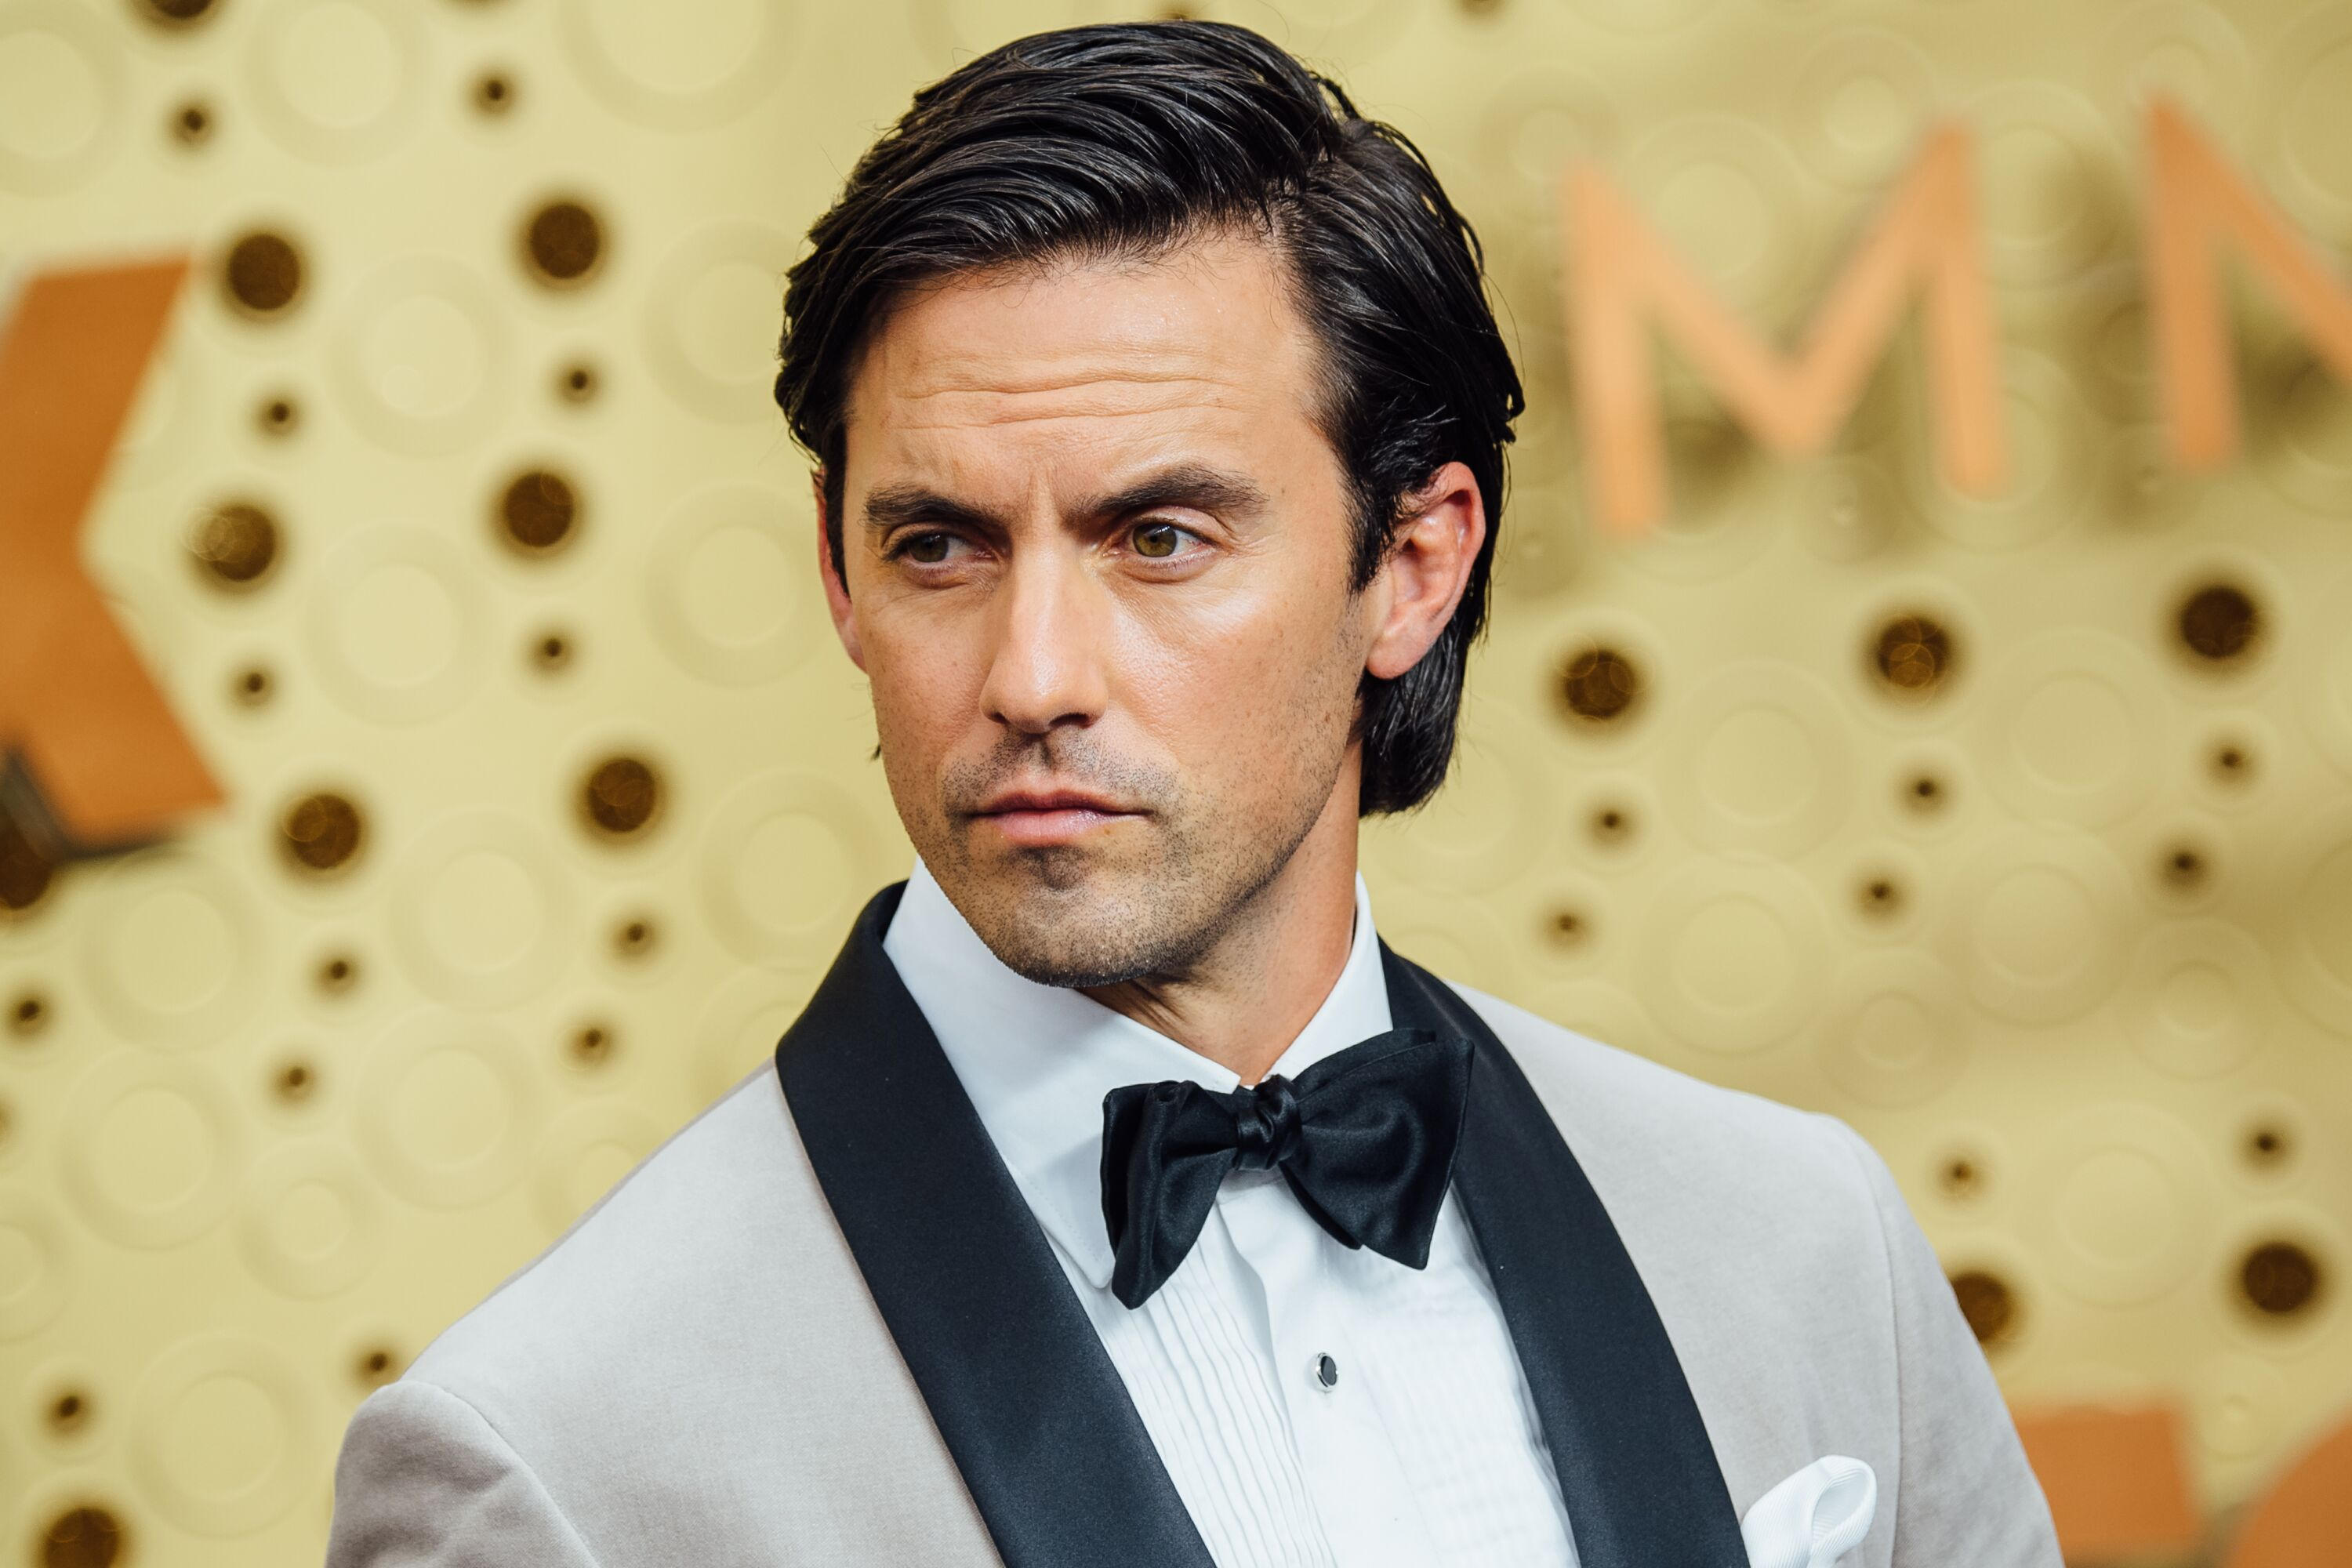 Milo Ventimiglia at the 71st Emmy Awards at Microsoft Theater on September 22, 2019, in Los Angeles, California | Photo: Emma McIntyre/Getty Images